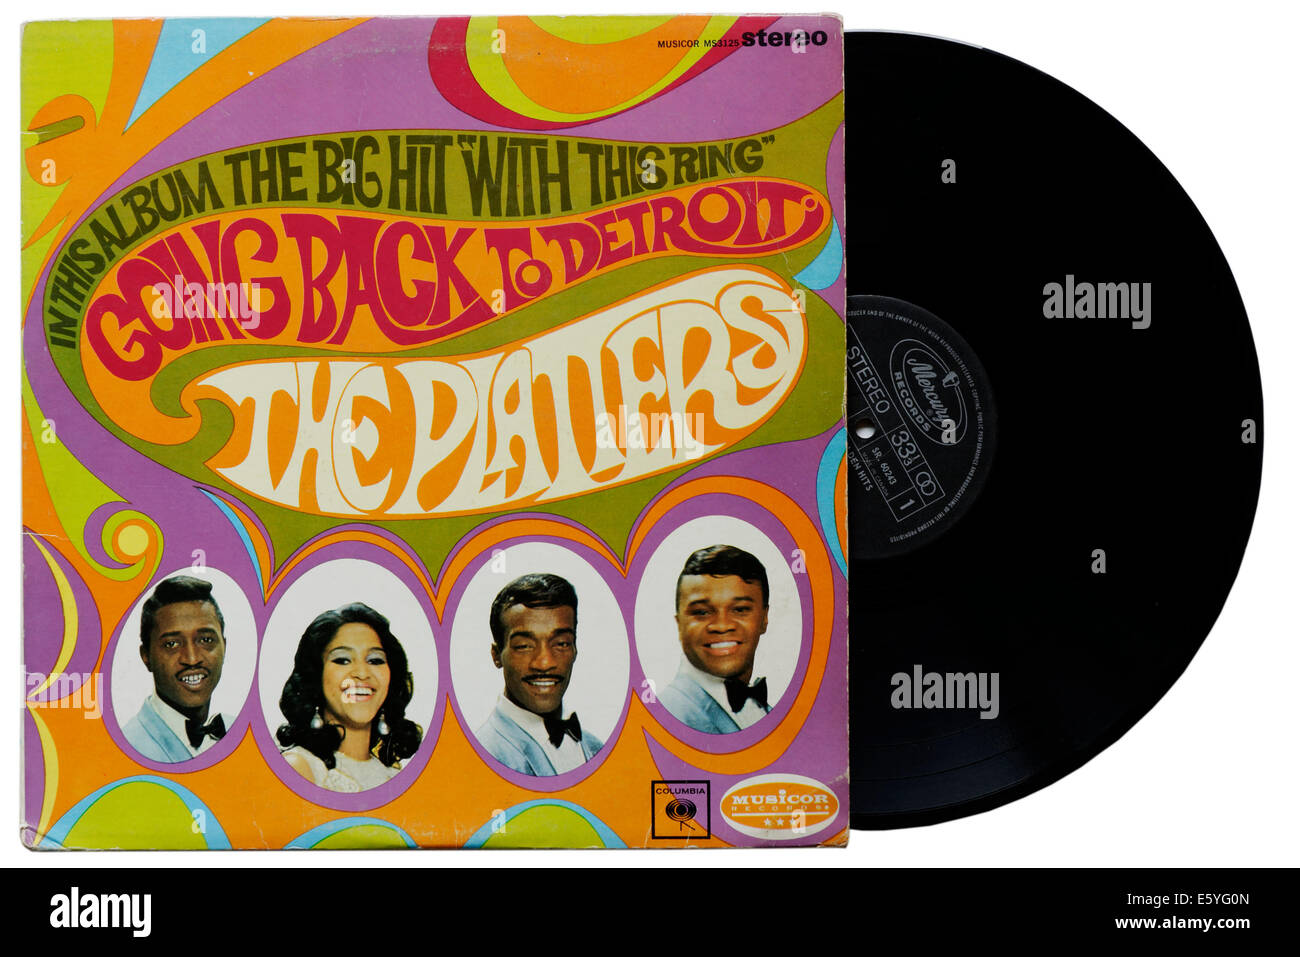 Going Back to Detroit by The Platters - Stock Image